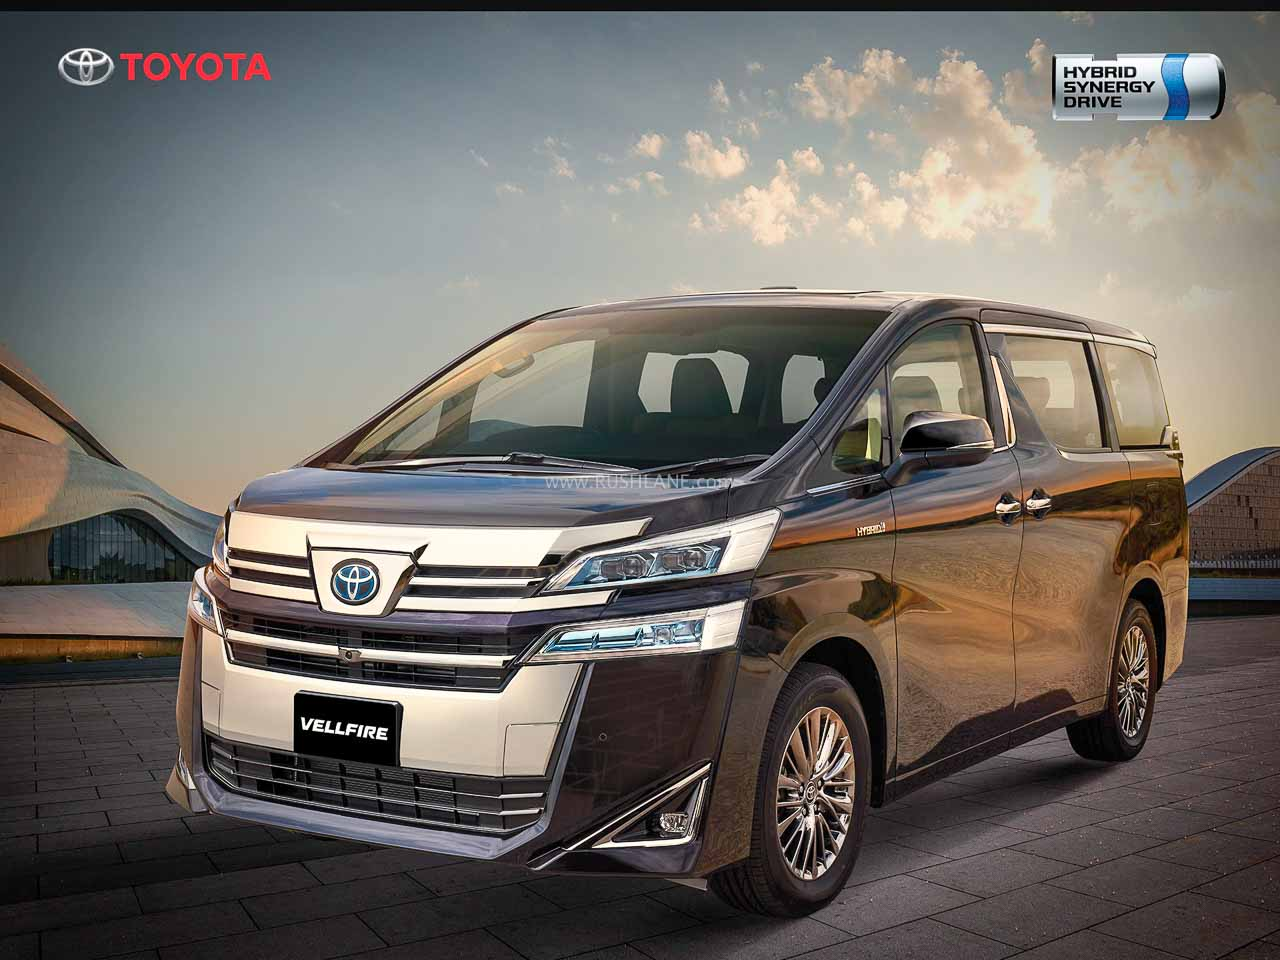 Toyota Vellfire price increased by Rs 4 lakh, Camry by Rs 1.14 lakh